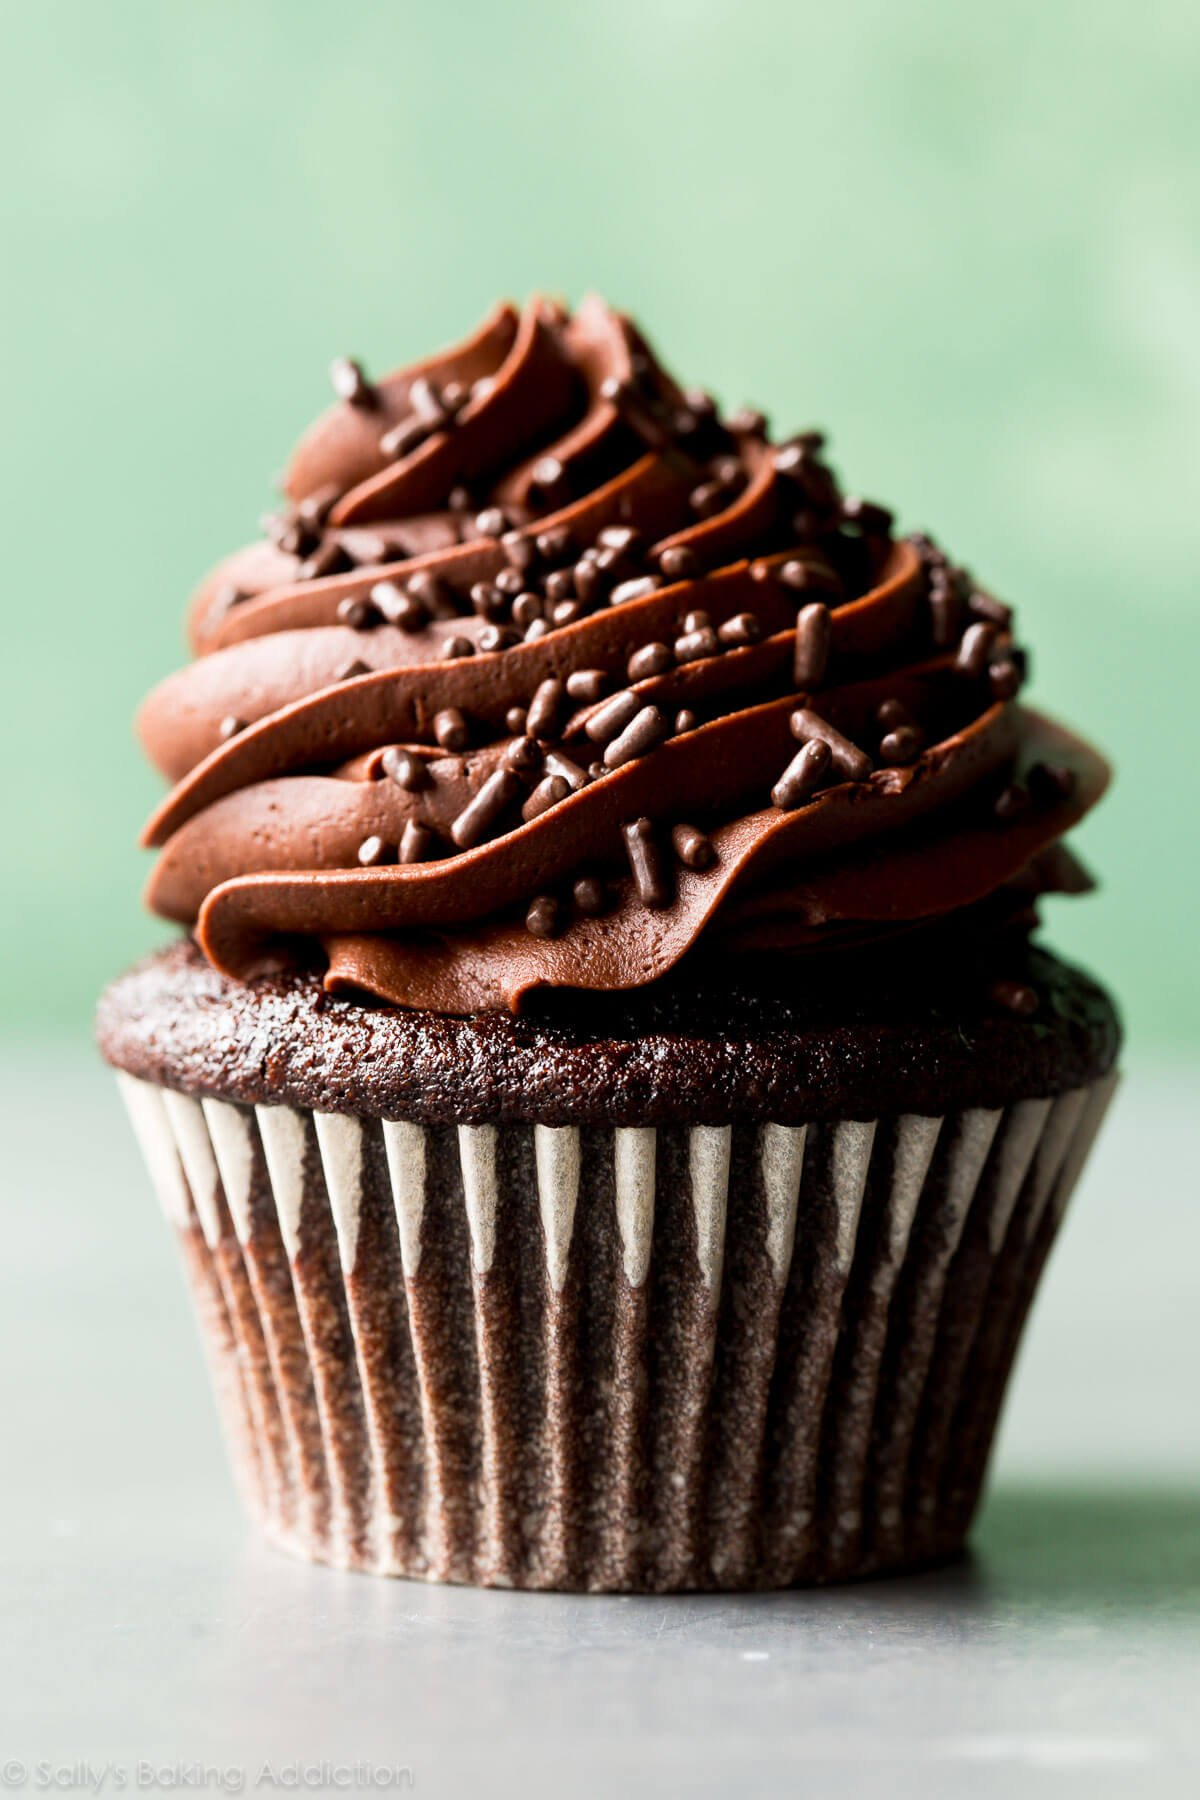 how do you make homemade chocolate cupcakes